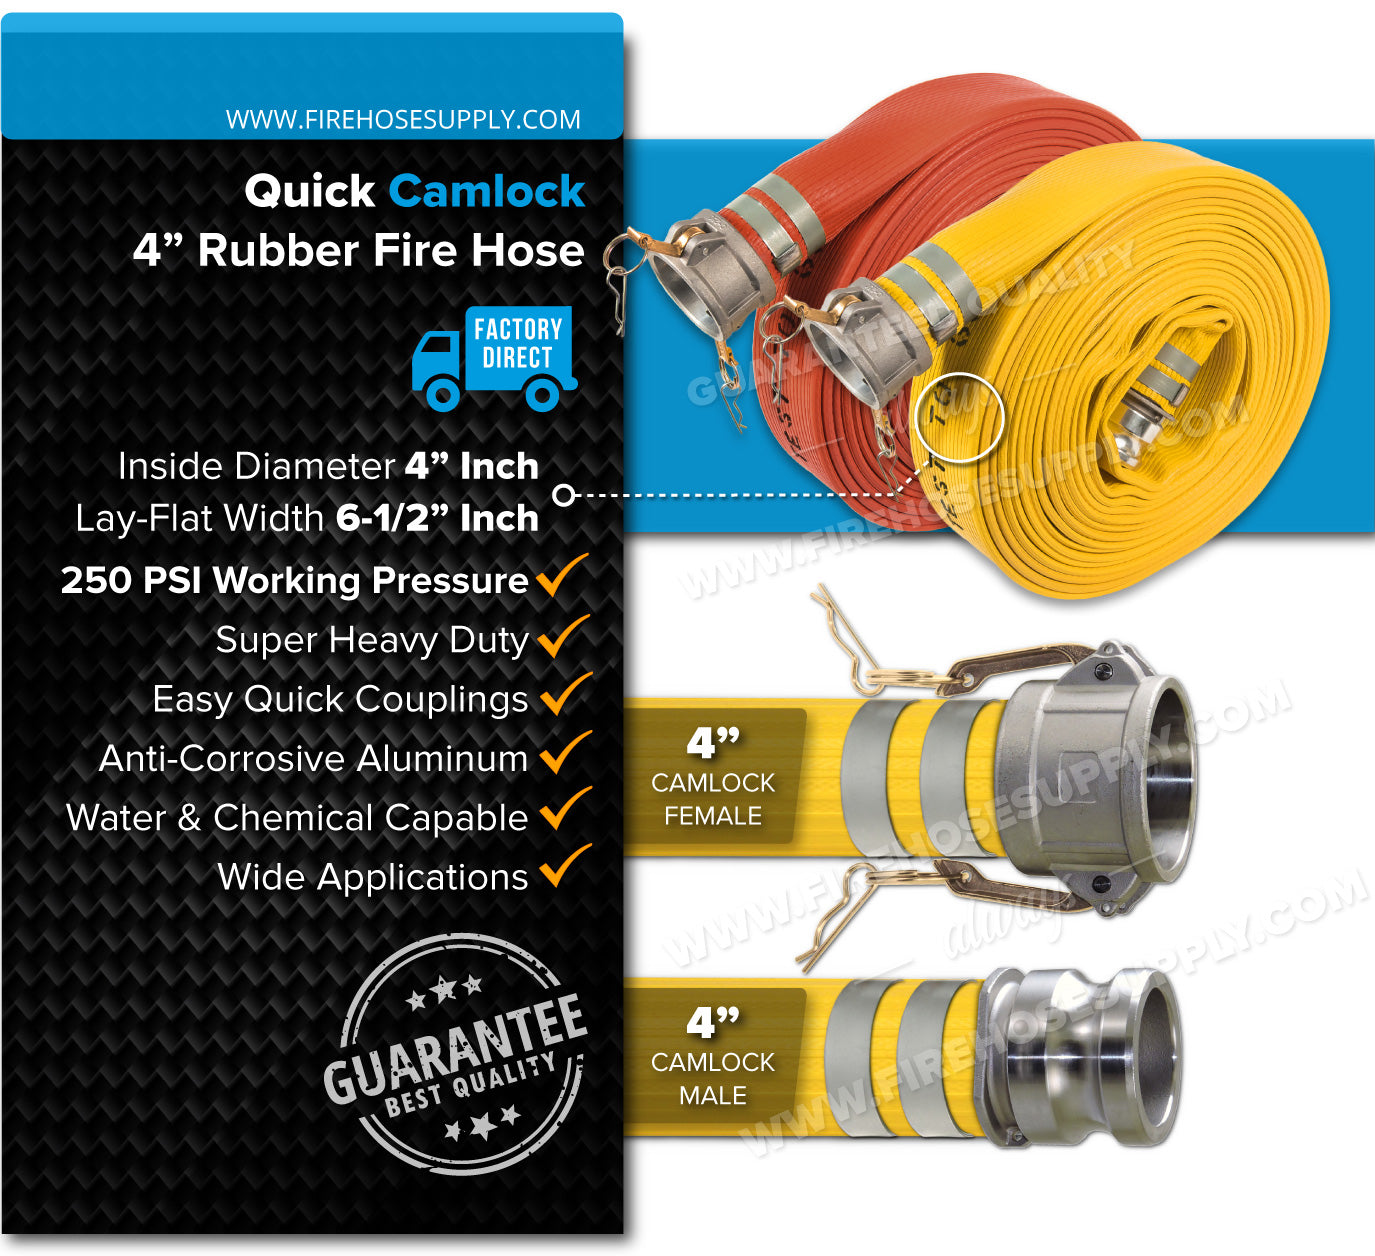 4 Inch Rubber Camlock Fire Hose Overview